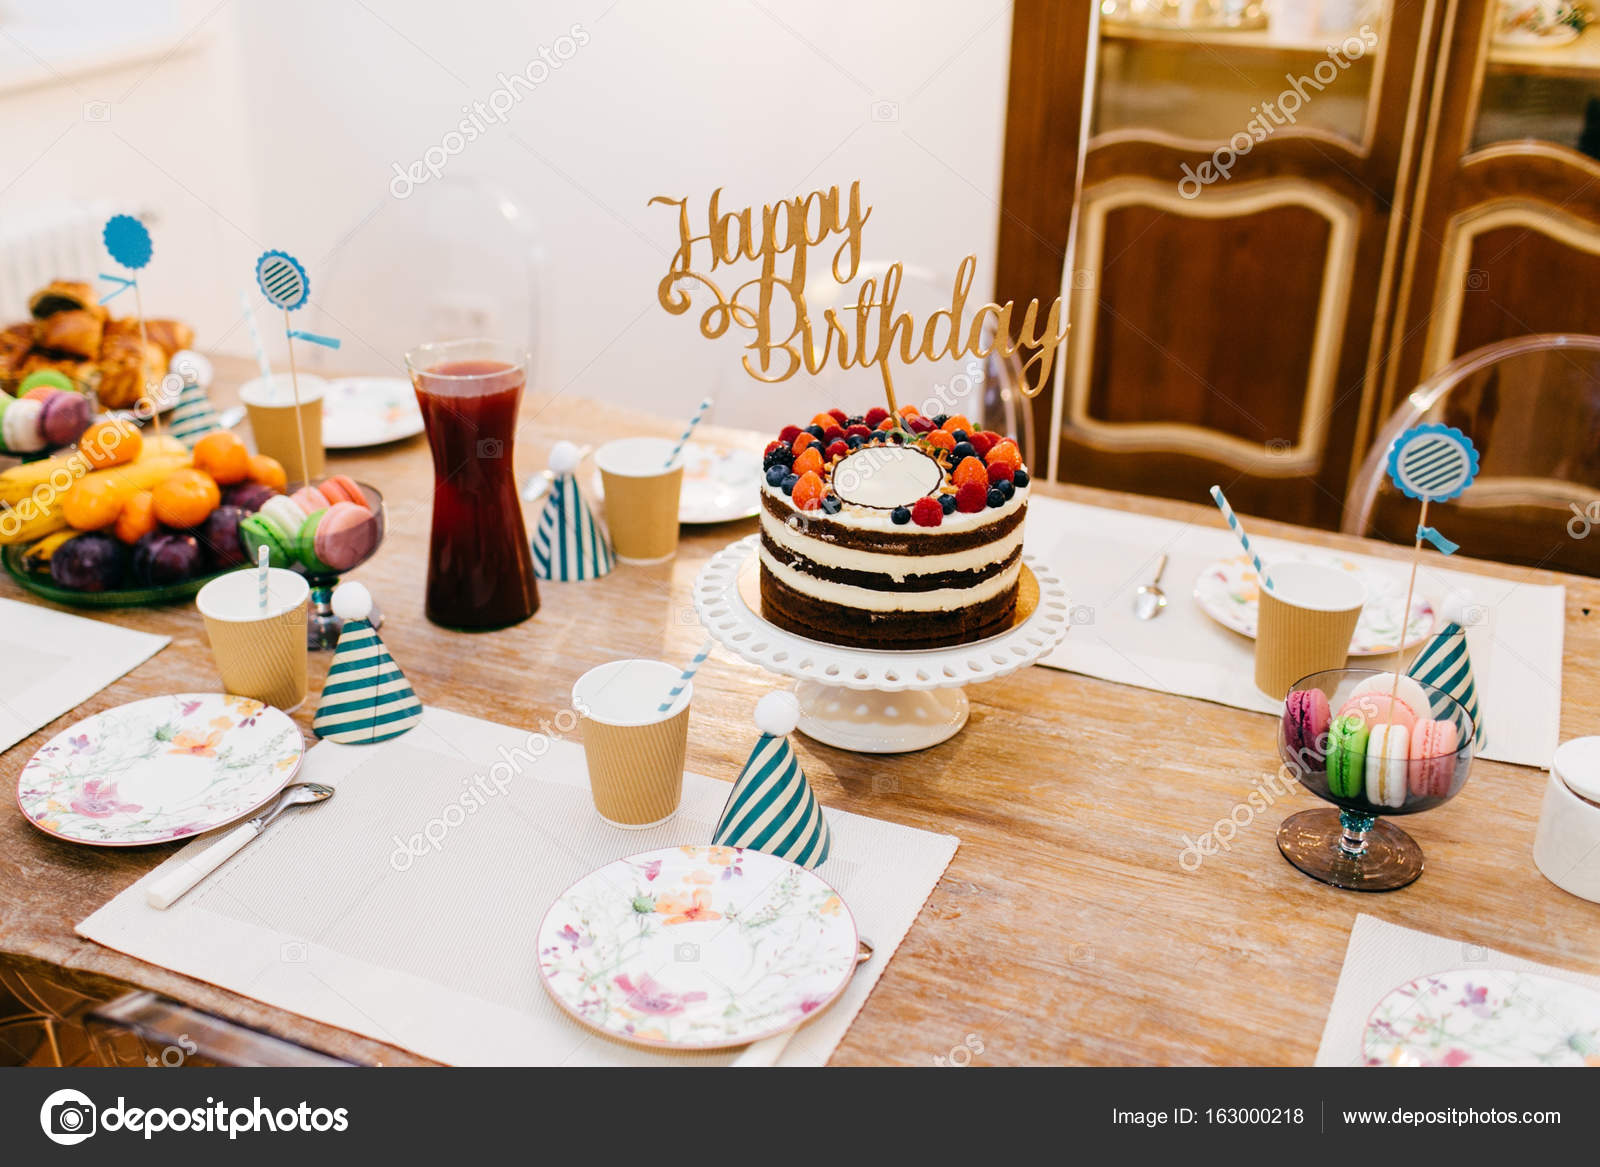 Holiday Table Served Wit Birthday Cake Full Of Fruit Compote Empty Plates And Party Hats Beautiful Set For